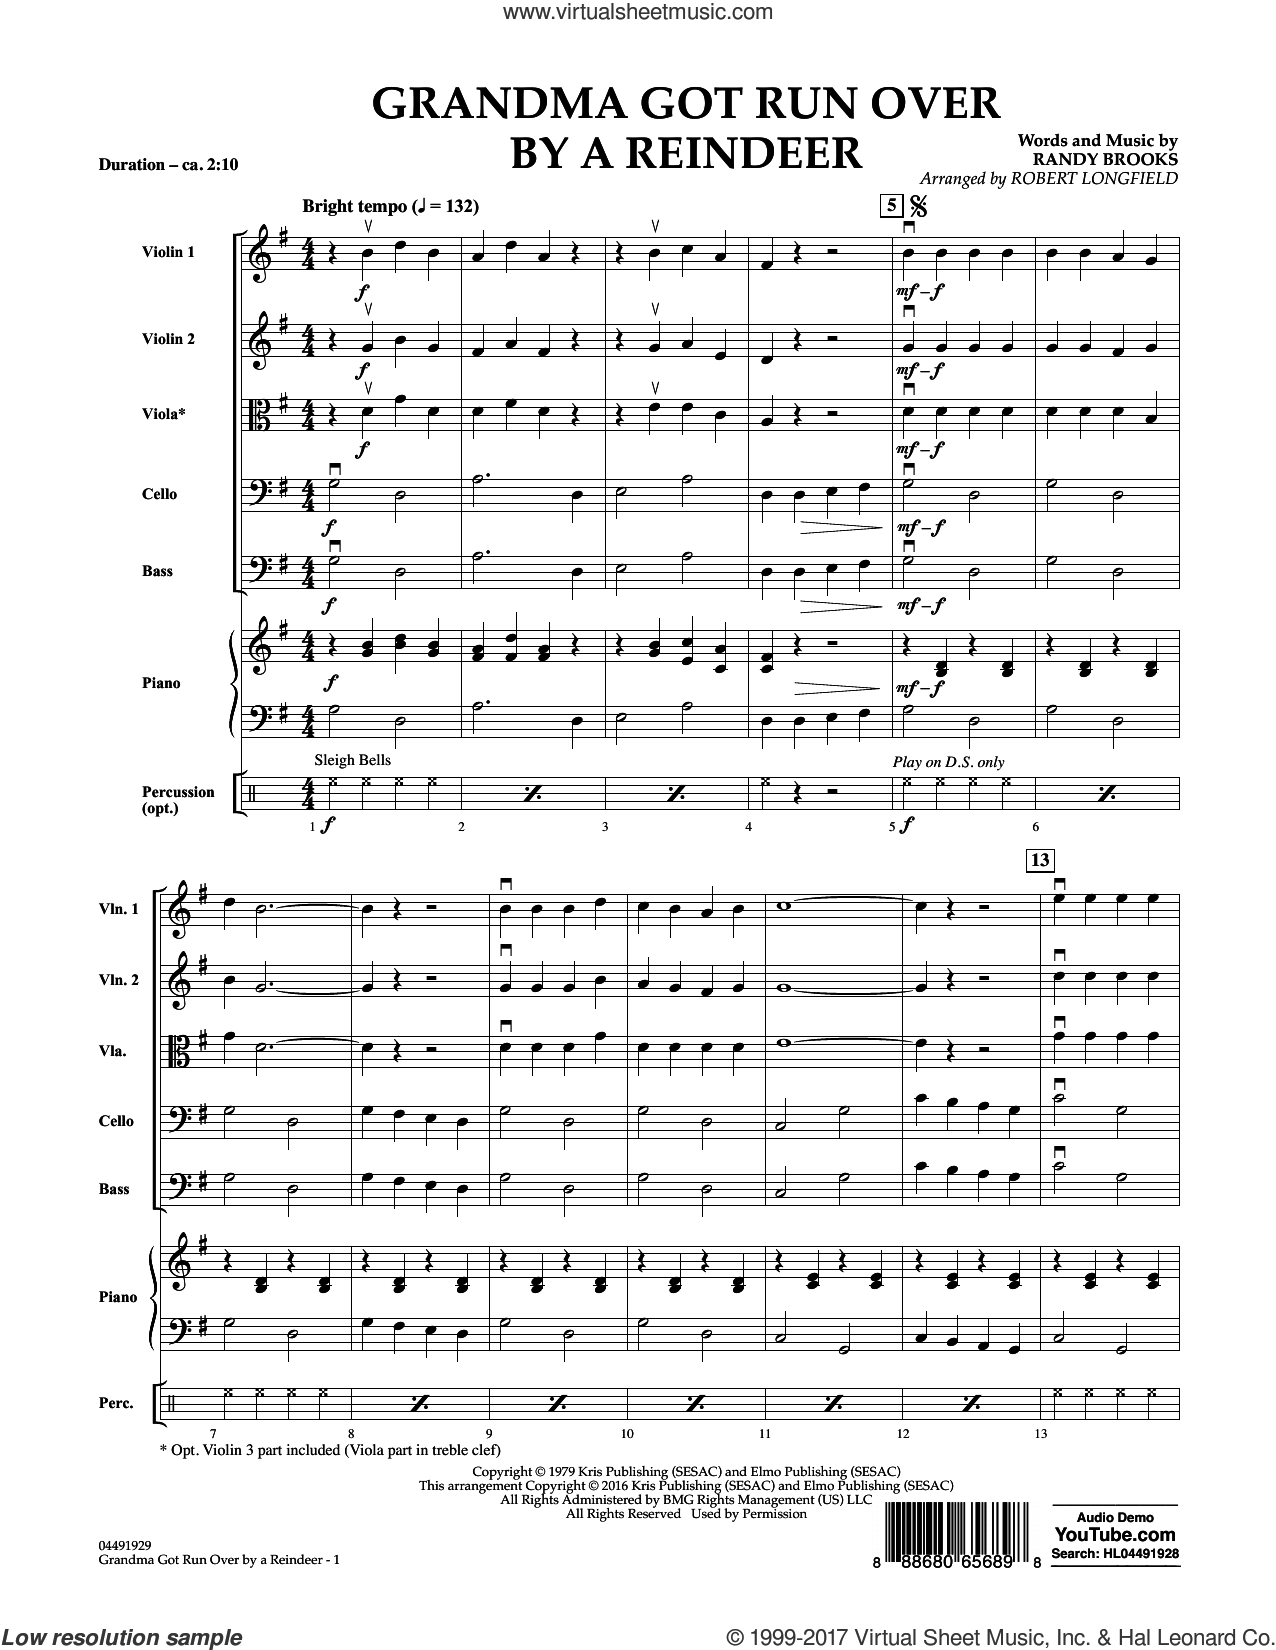 Grandma Got Run Over by a Reindeer (COMPLETE) sheet music for orchestra by Robert Longfield and Randy Brooks, intermediate. Score Image Preview.